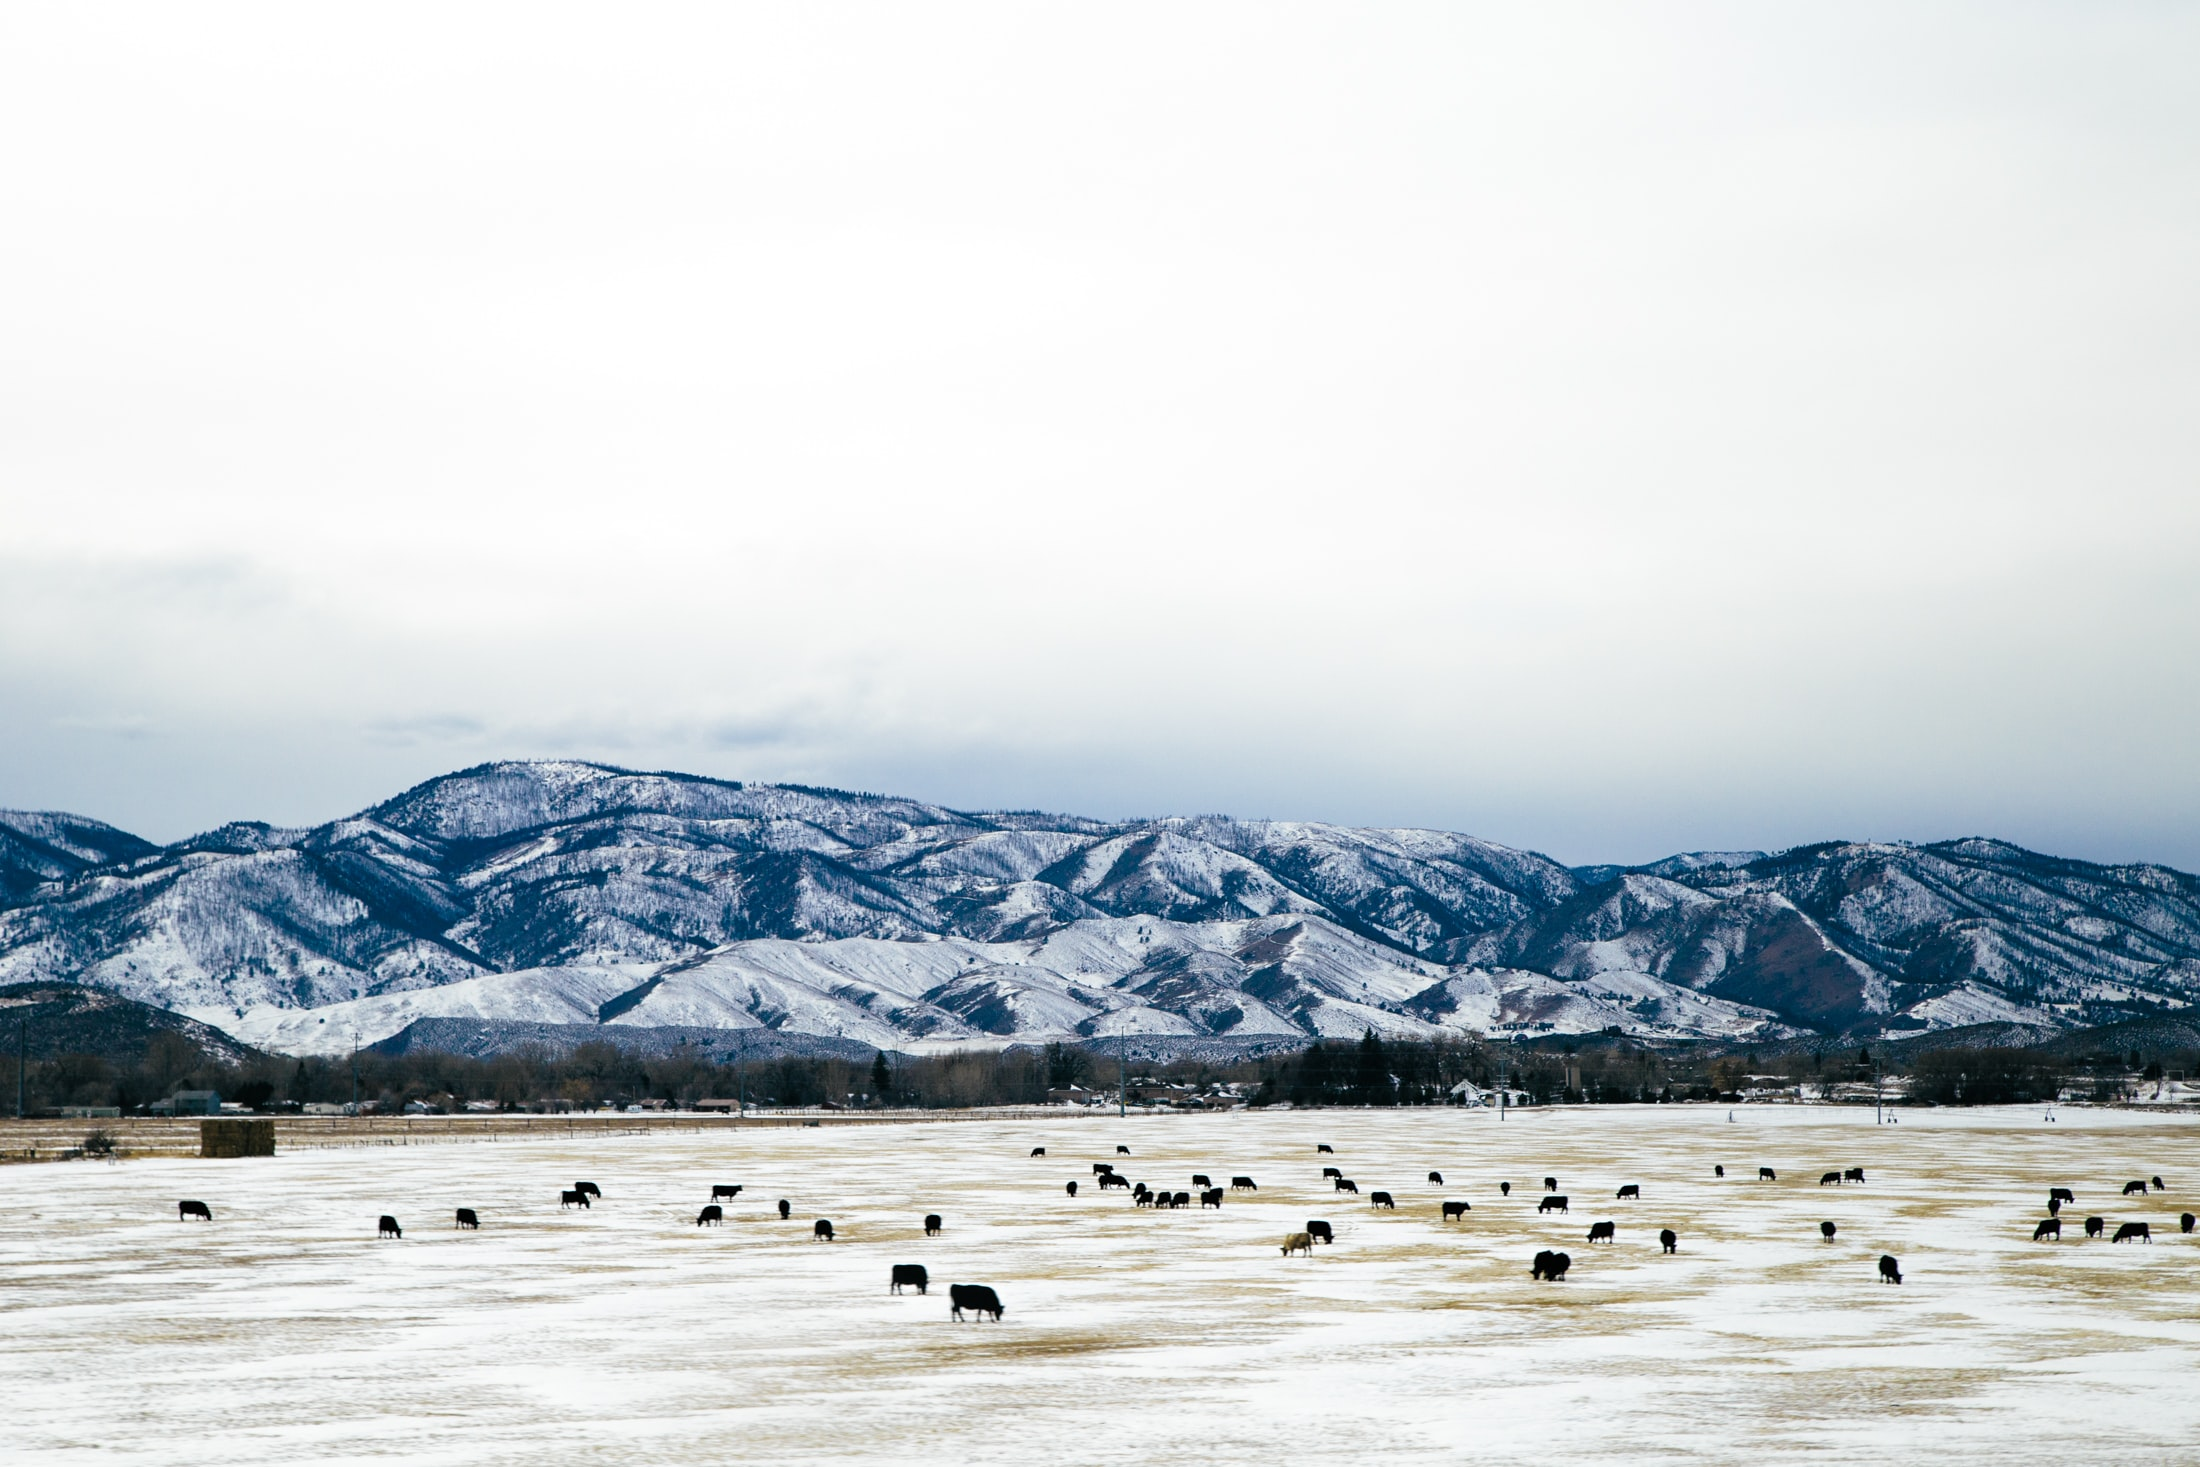 Livestock graze on the grassy, snowy plain below a distant mountain range